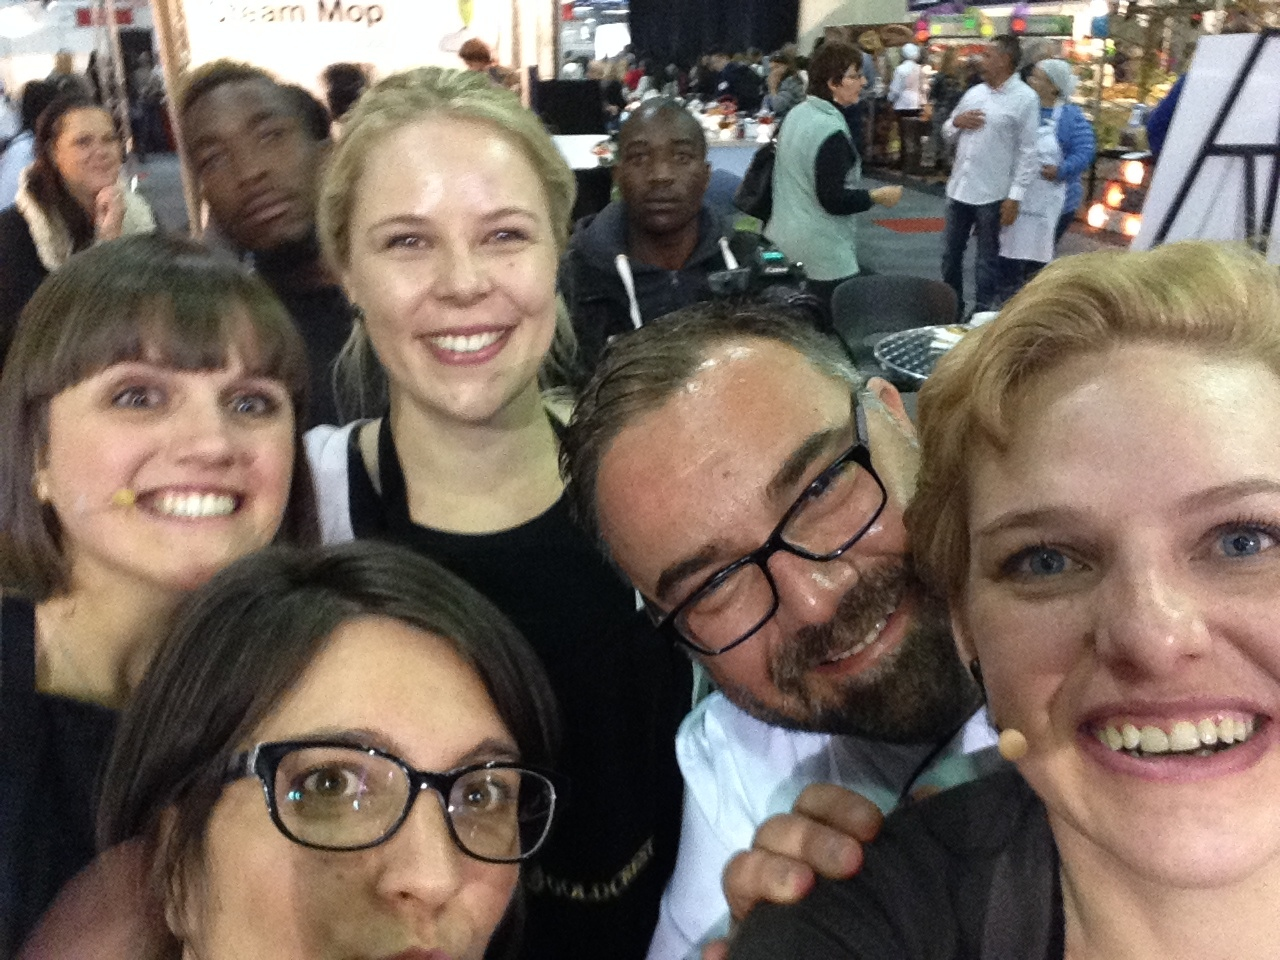 Clockwise from the back: Lauren, Harry, Syllable, Leila, Kate - and what is a selfie/ussie without a few photo bombers? :)